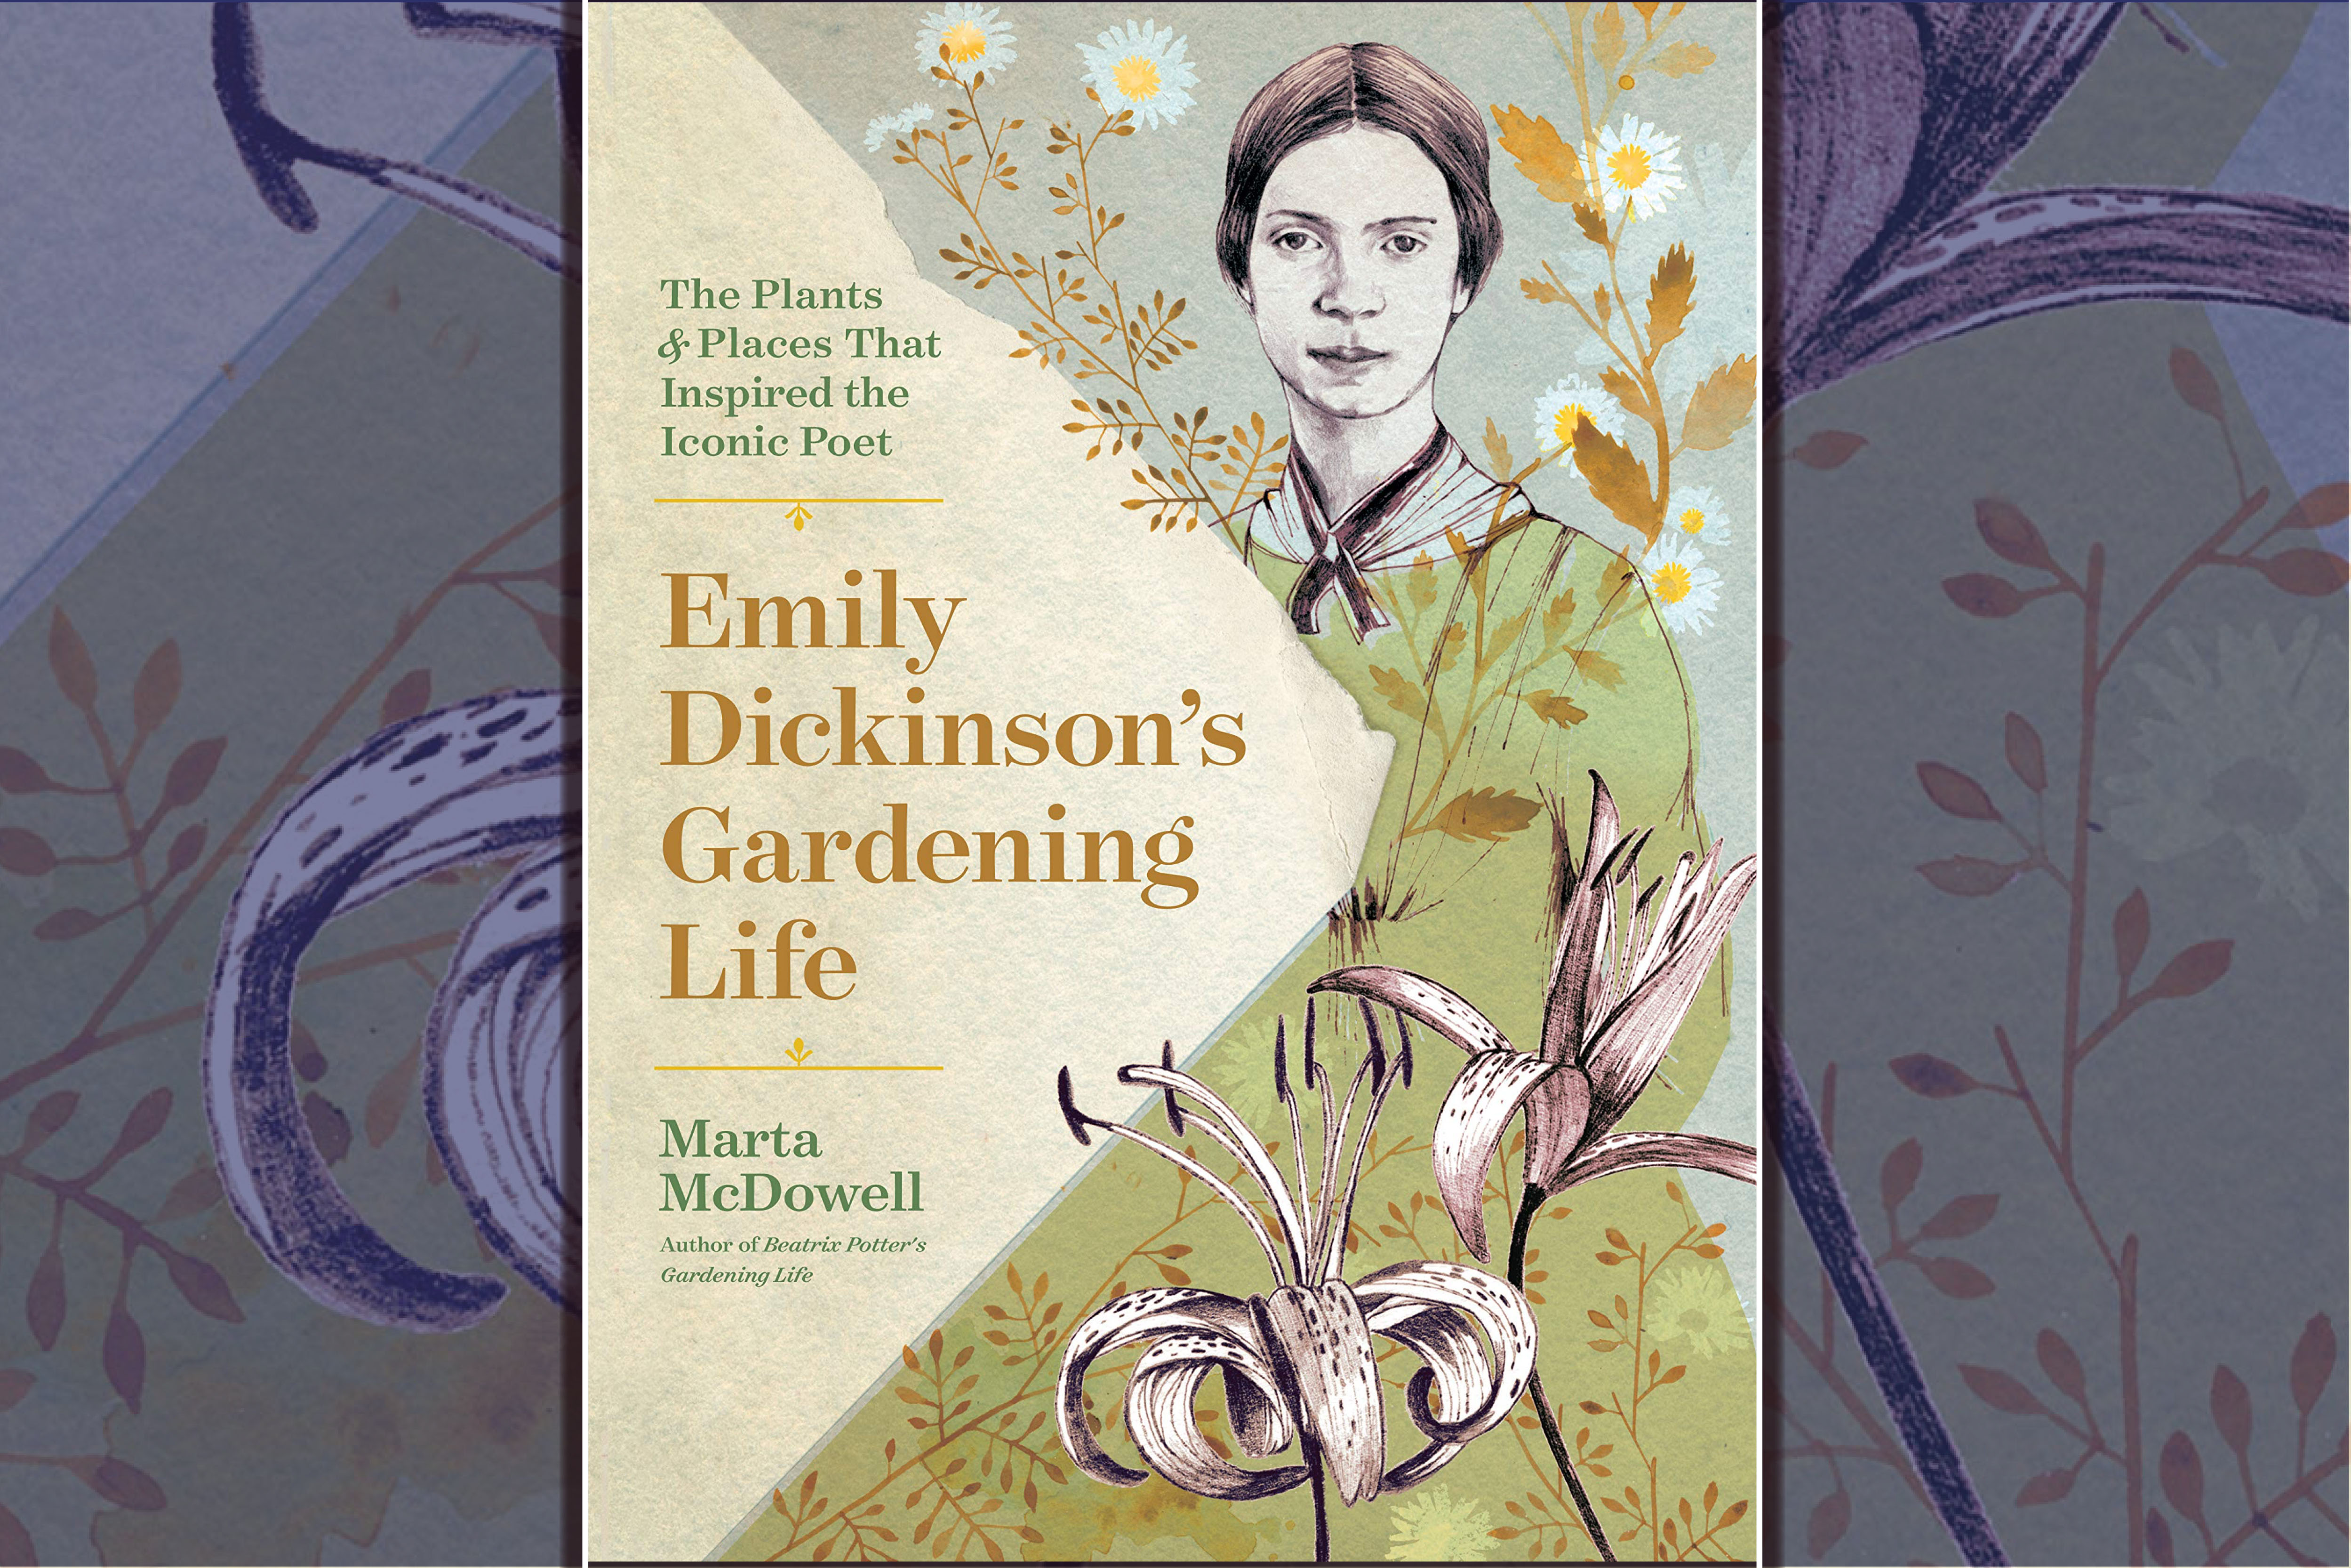 Book Discussion: Emily Dickinson's Gardening Life by Marta McDowell